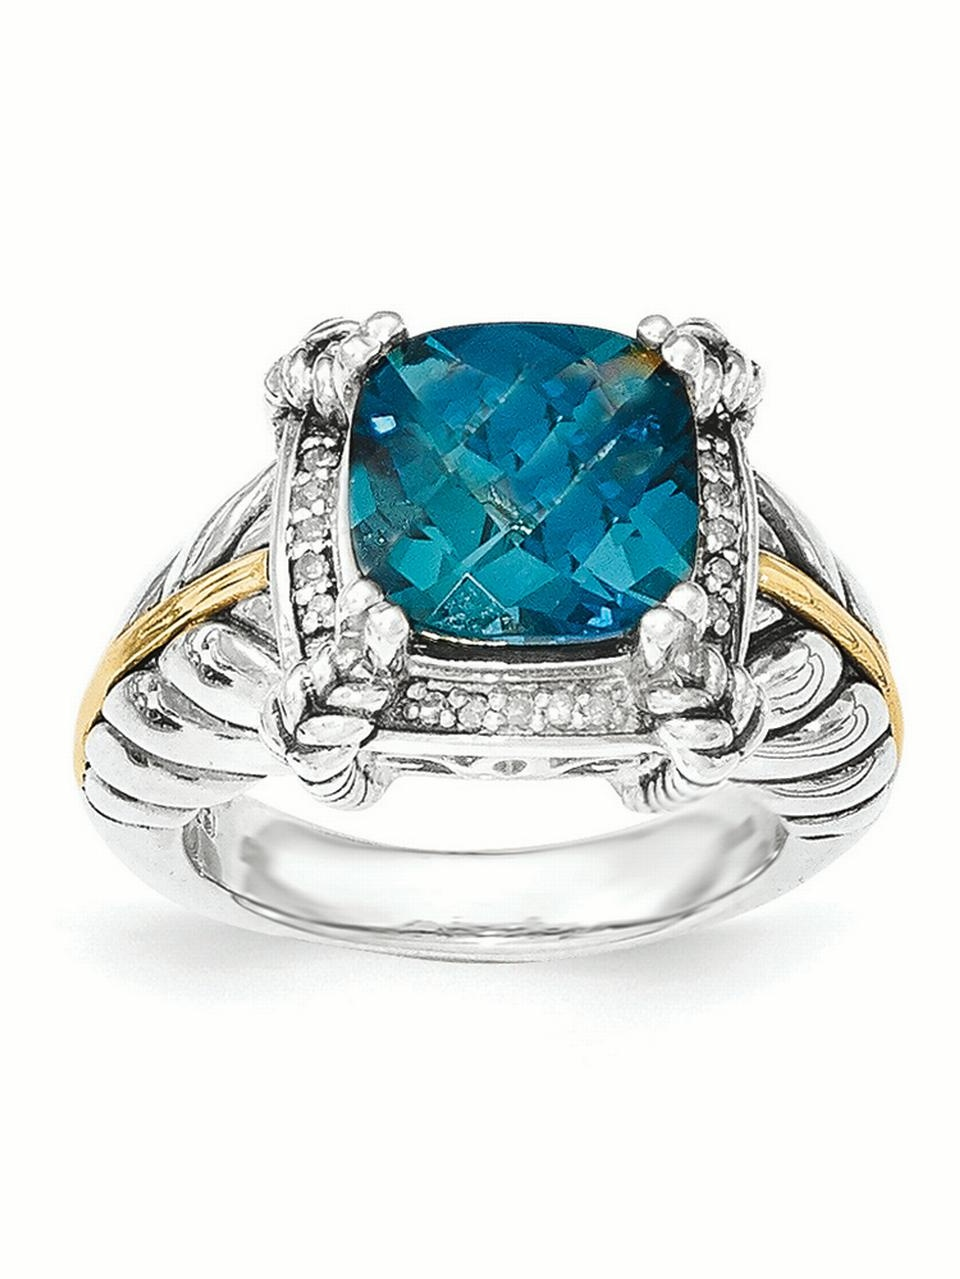 Sterling Silver with 14k 4.50Swiss Blue Topaz Ring